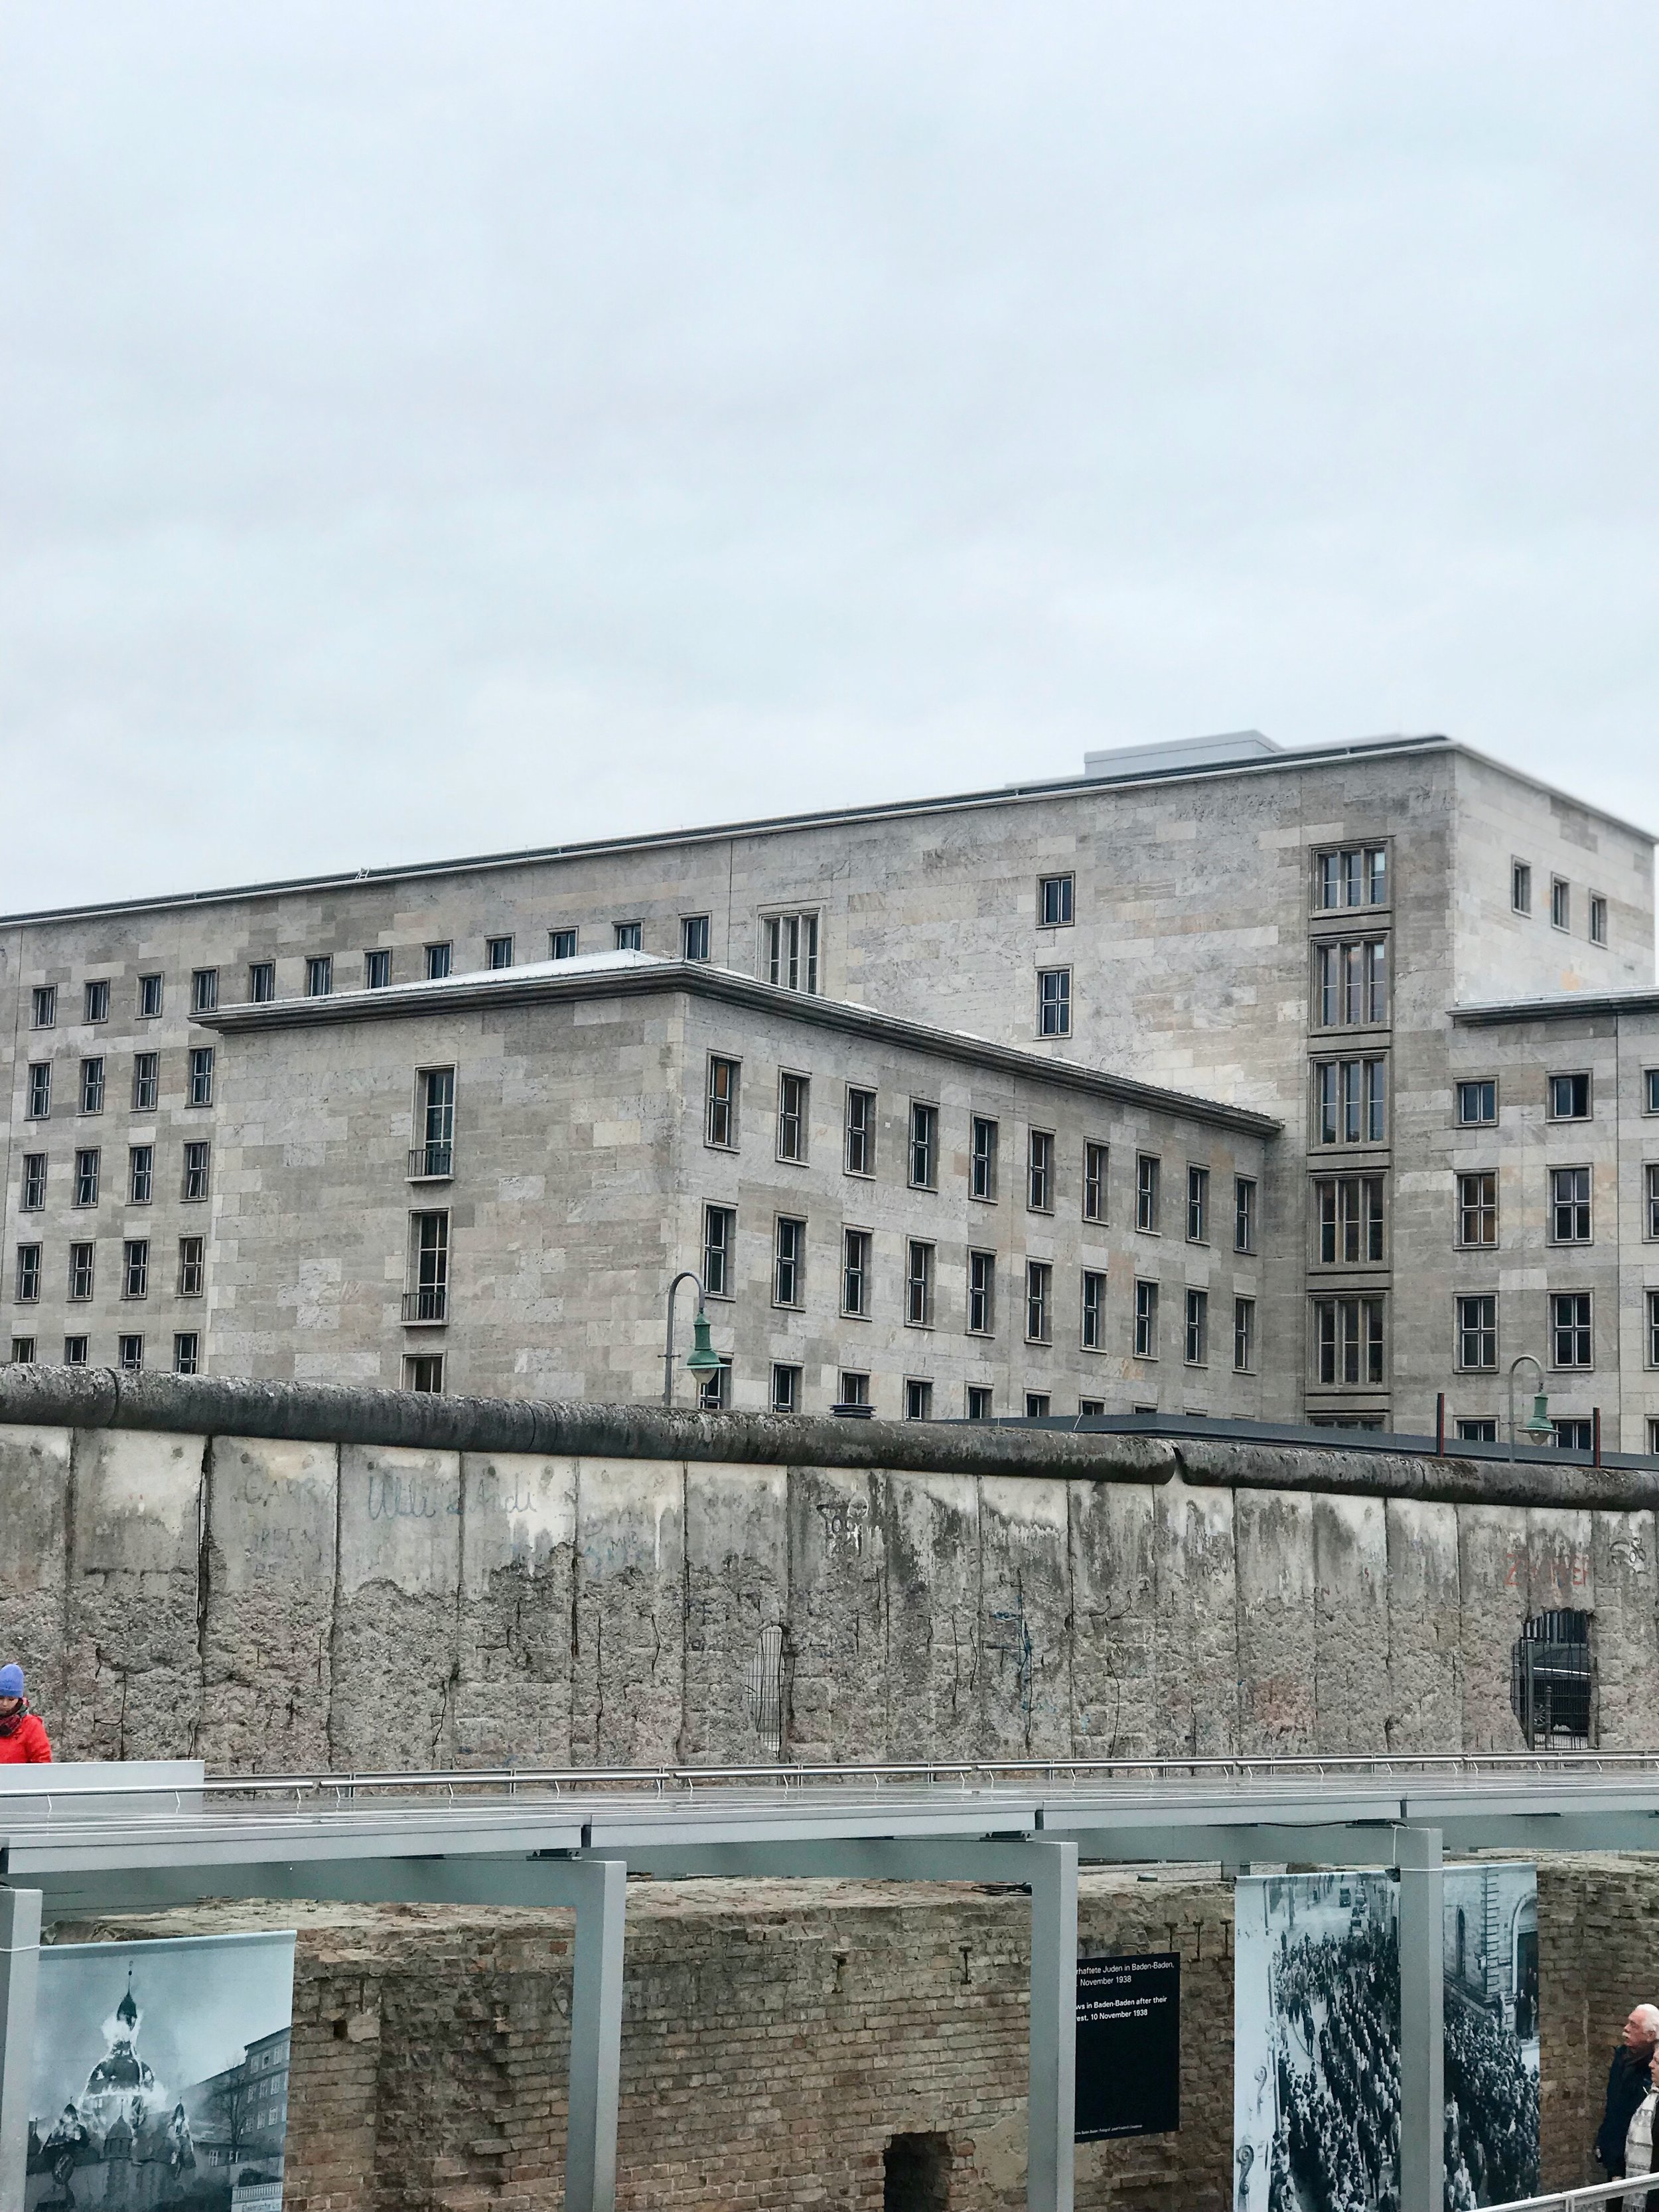 Two distinct periods in german history in one picture - Nazi building in the background, berlin wall in the fore